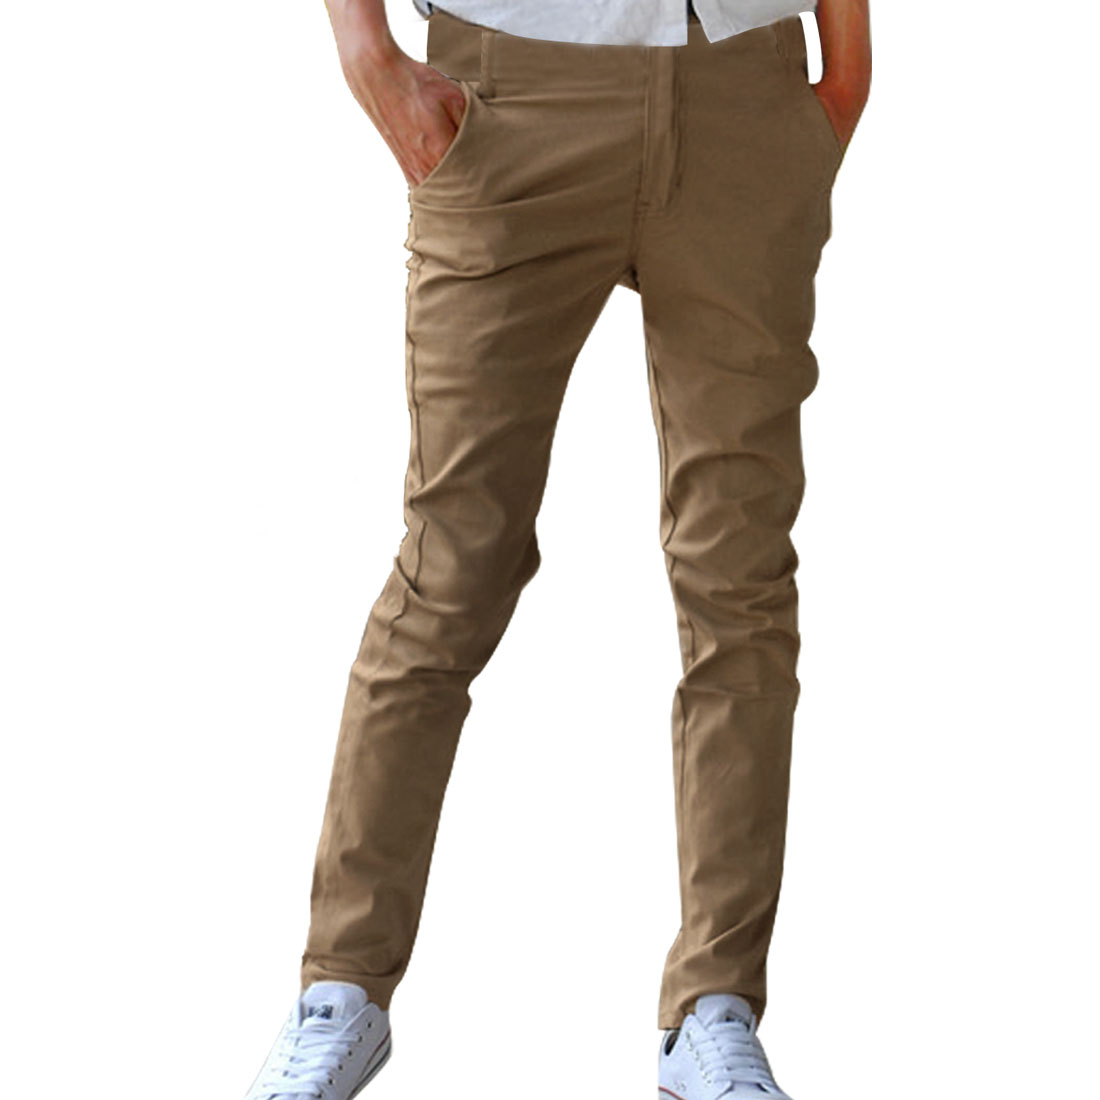 Azzuro Men's Flat Front Pants Brown (Size M / W34)